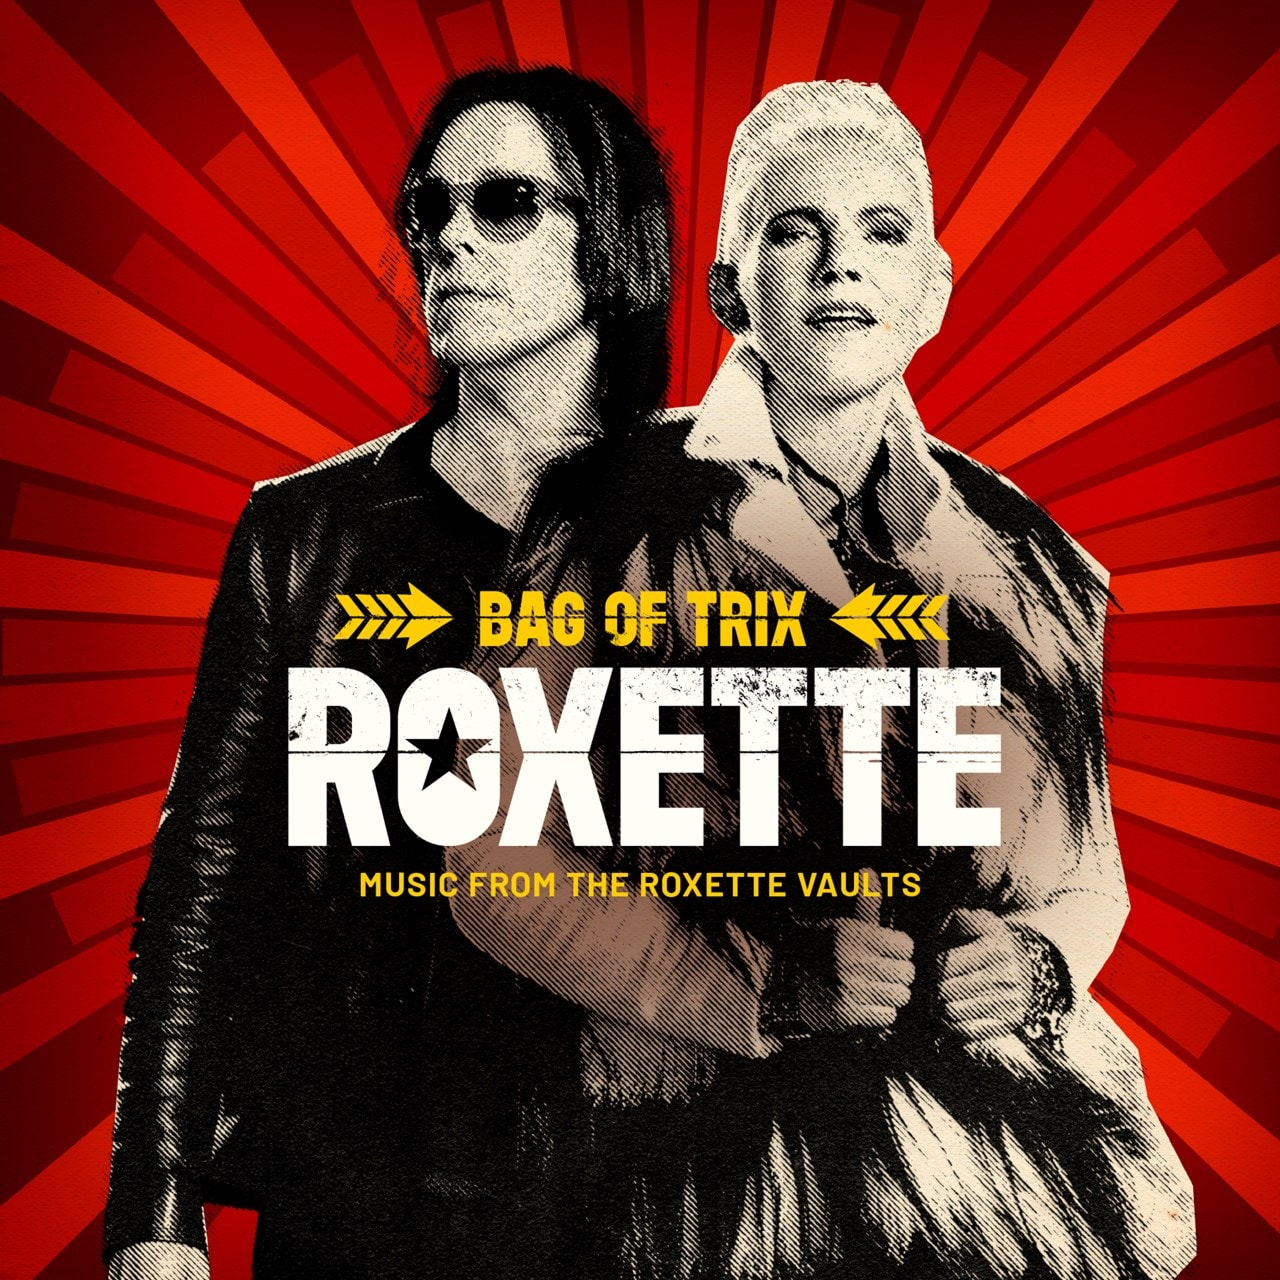 Bag of Trix: Music from the Roxette Vaults - 1